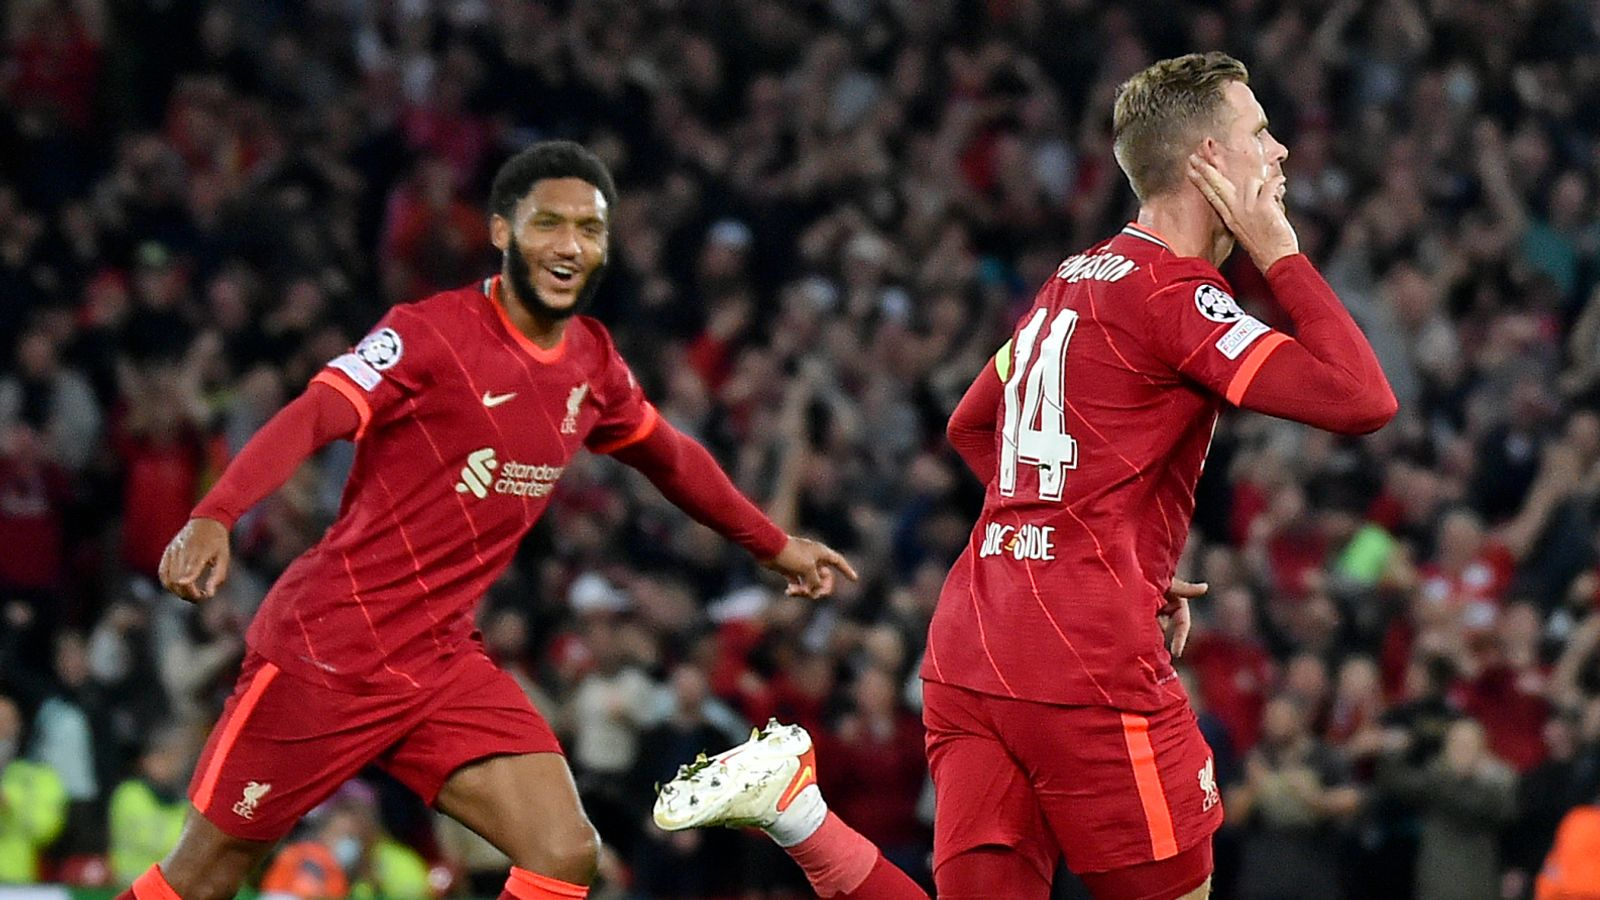 Liverpool 3-2 AC Milan: Reds come from behind on dramatic opening night to claim Champions League Group B win   Football News   Sky Sports